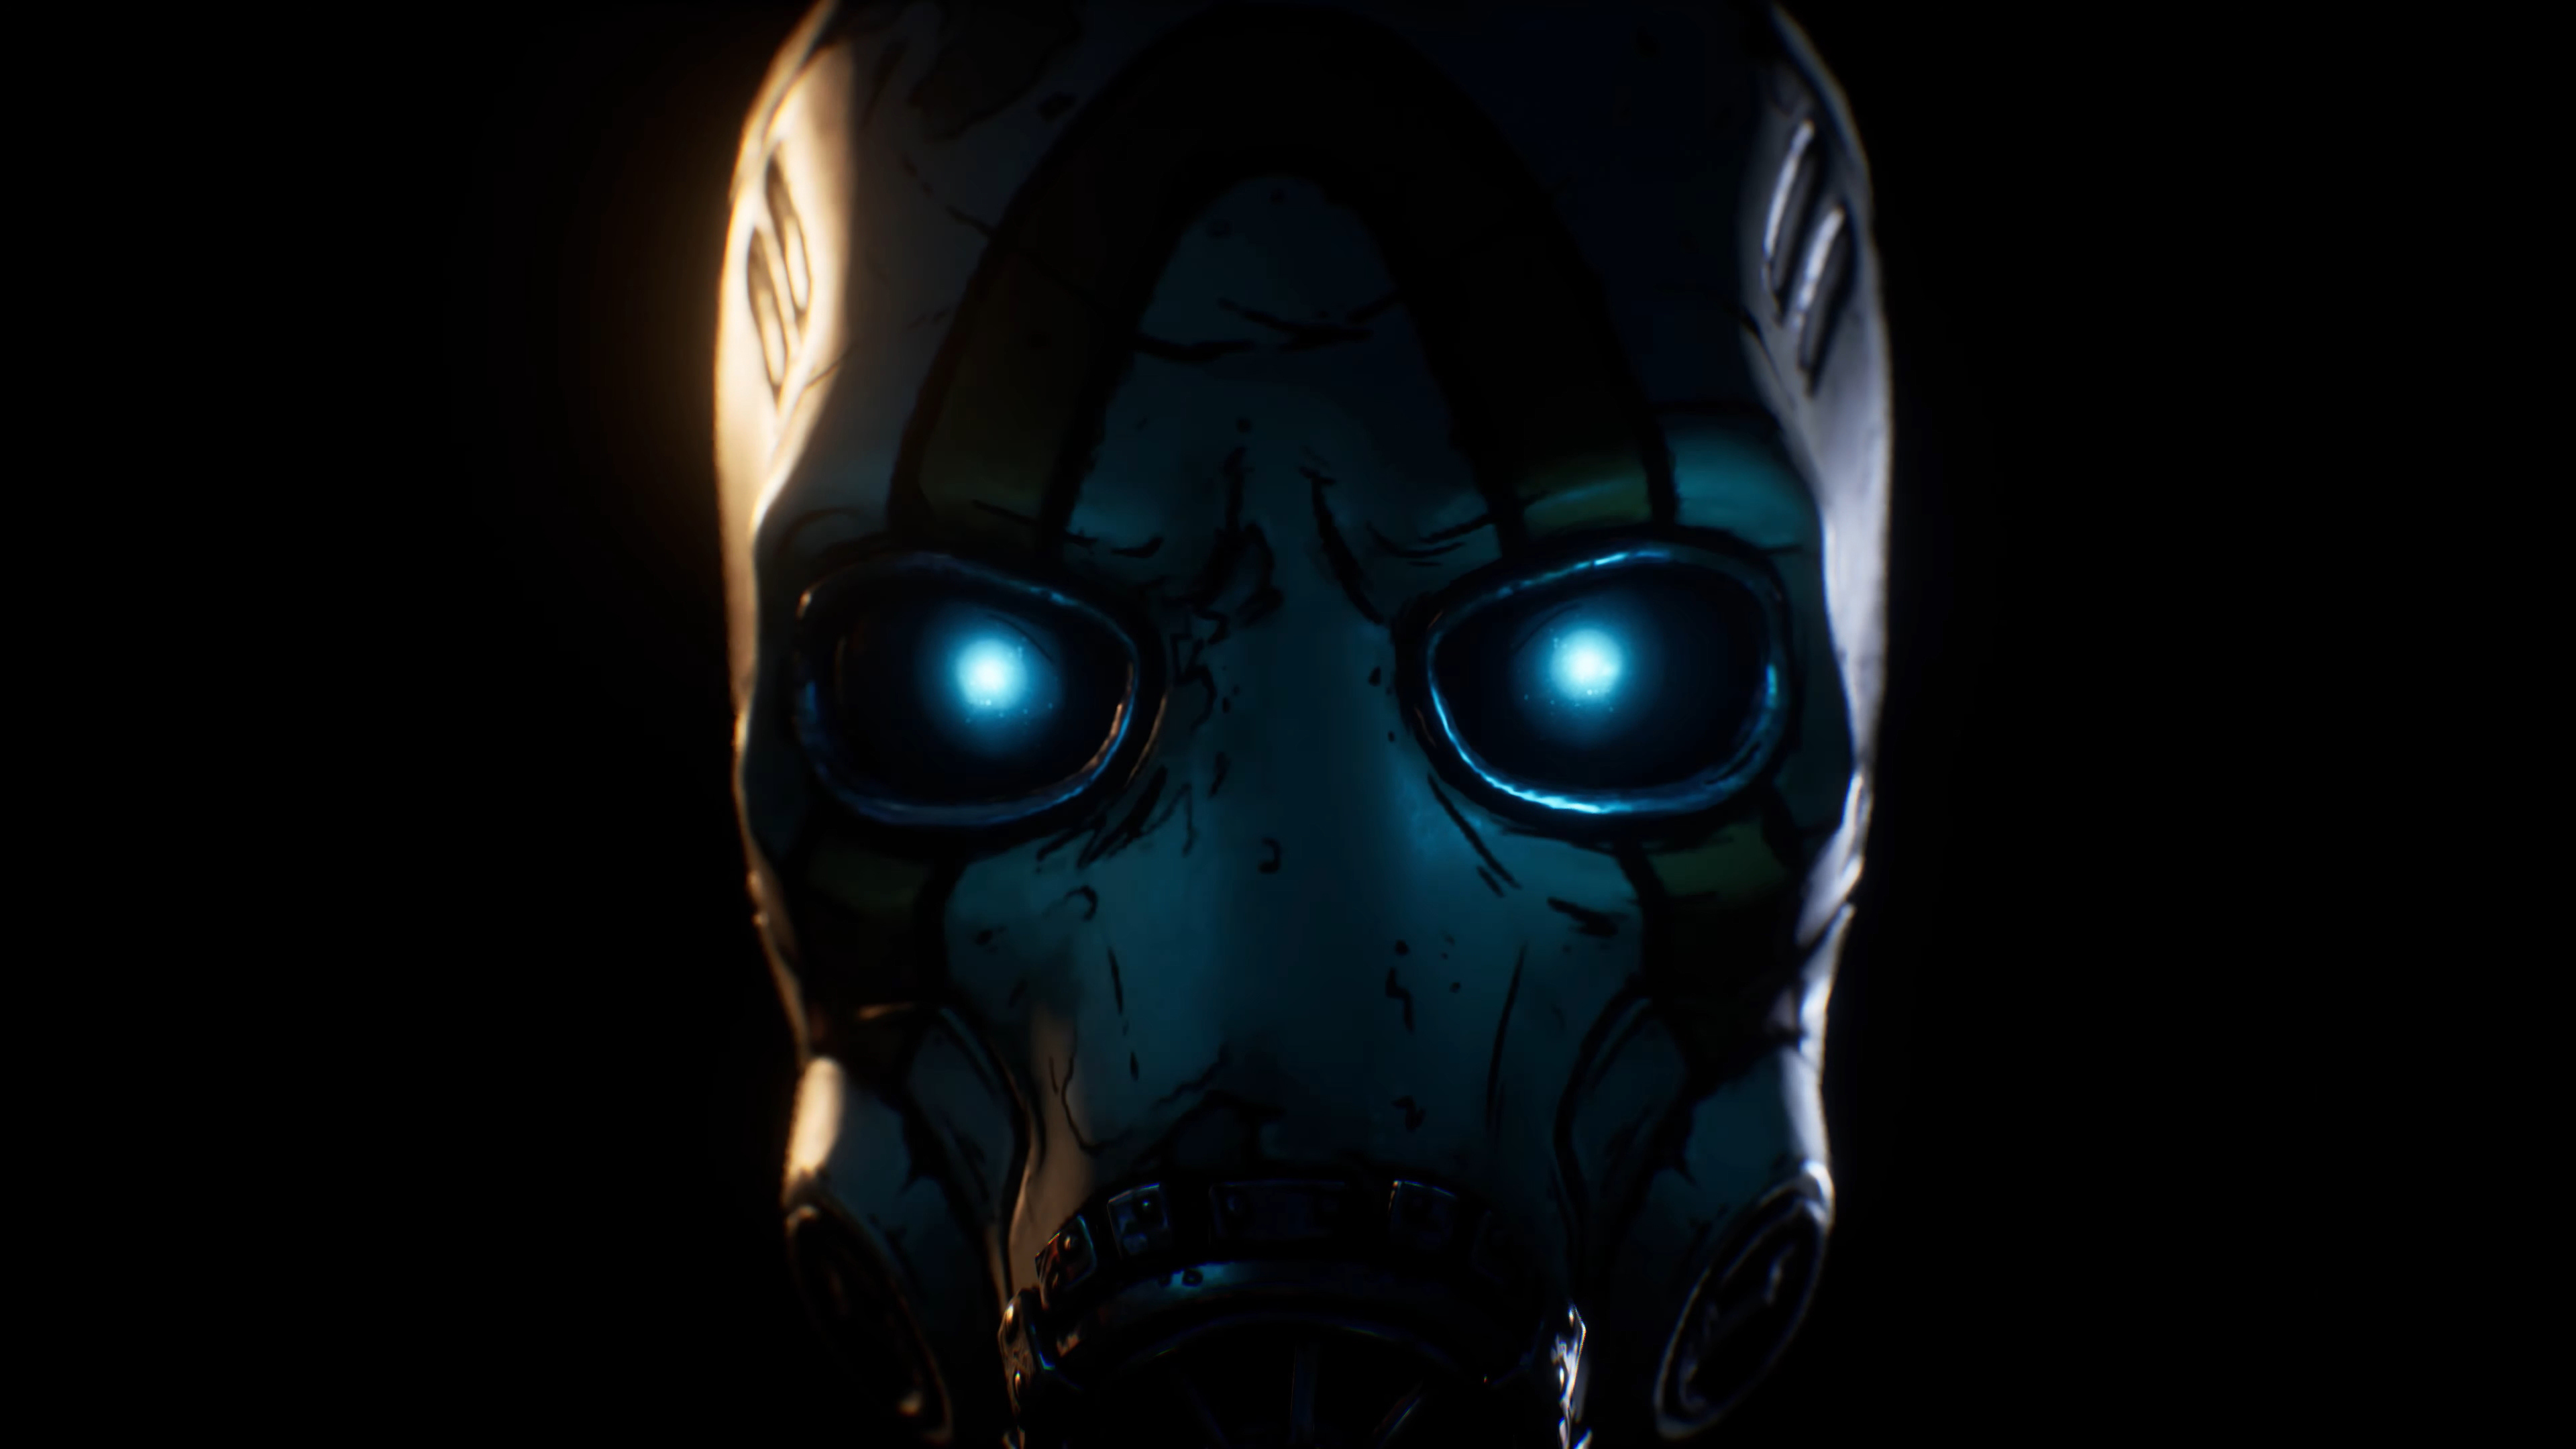 Fondos de pantalla Borderlands 3